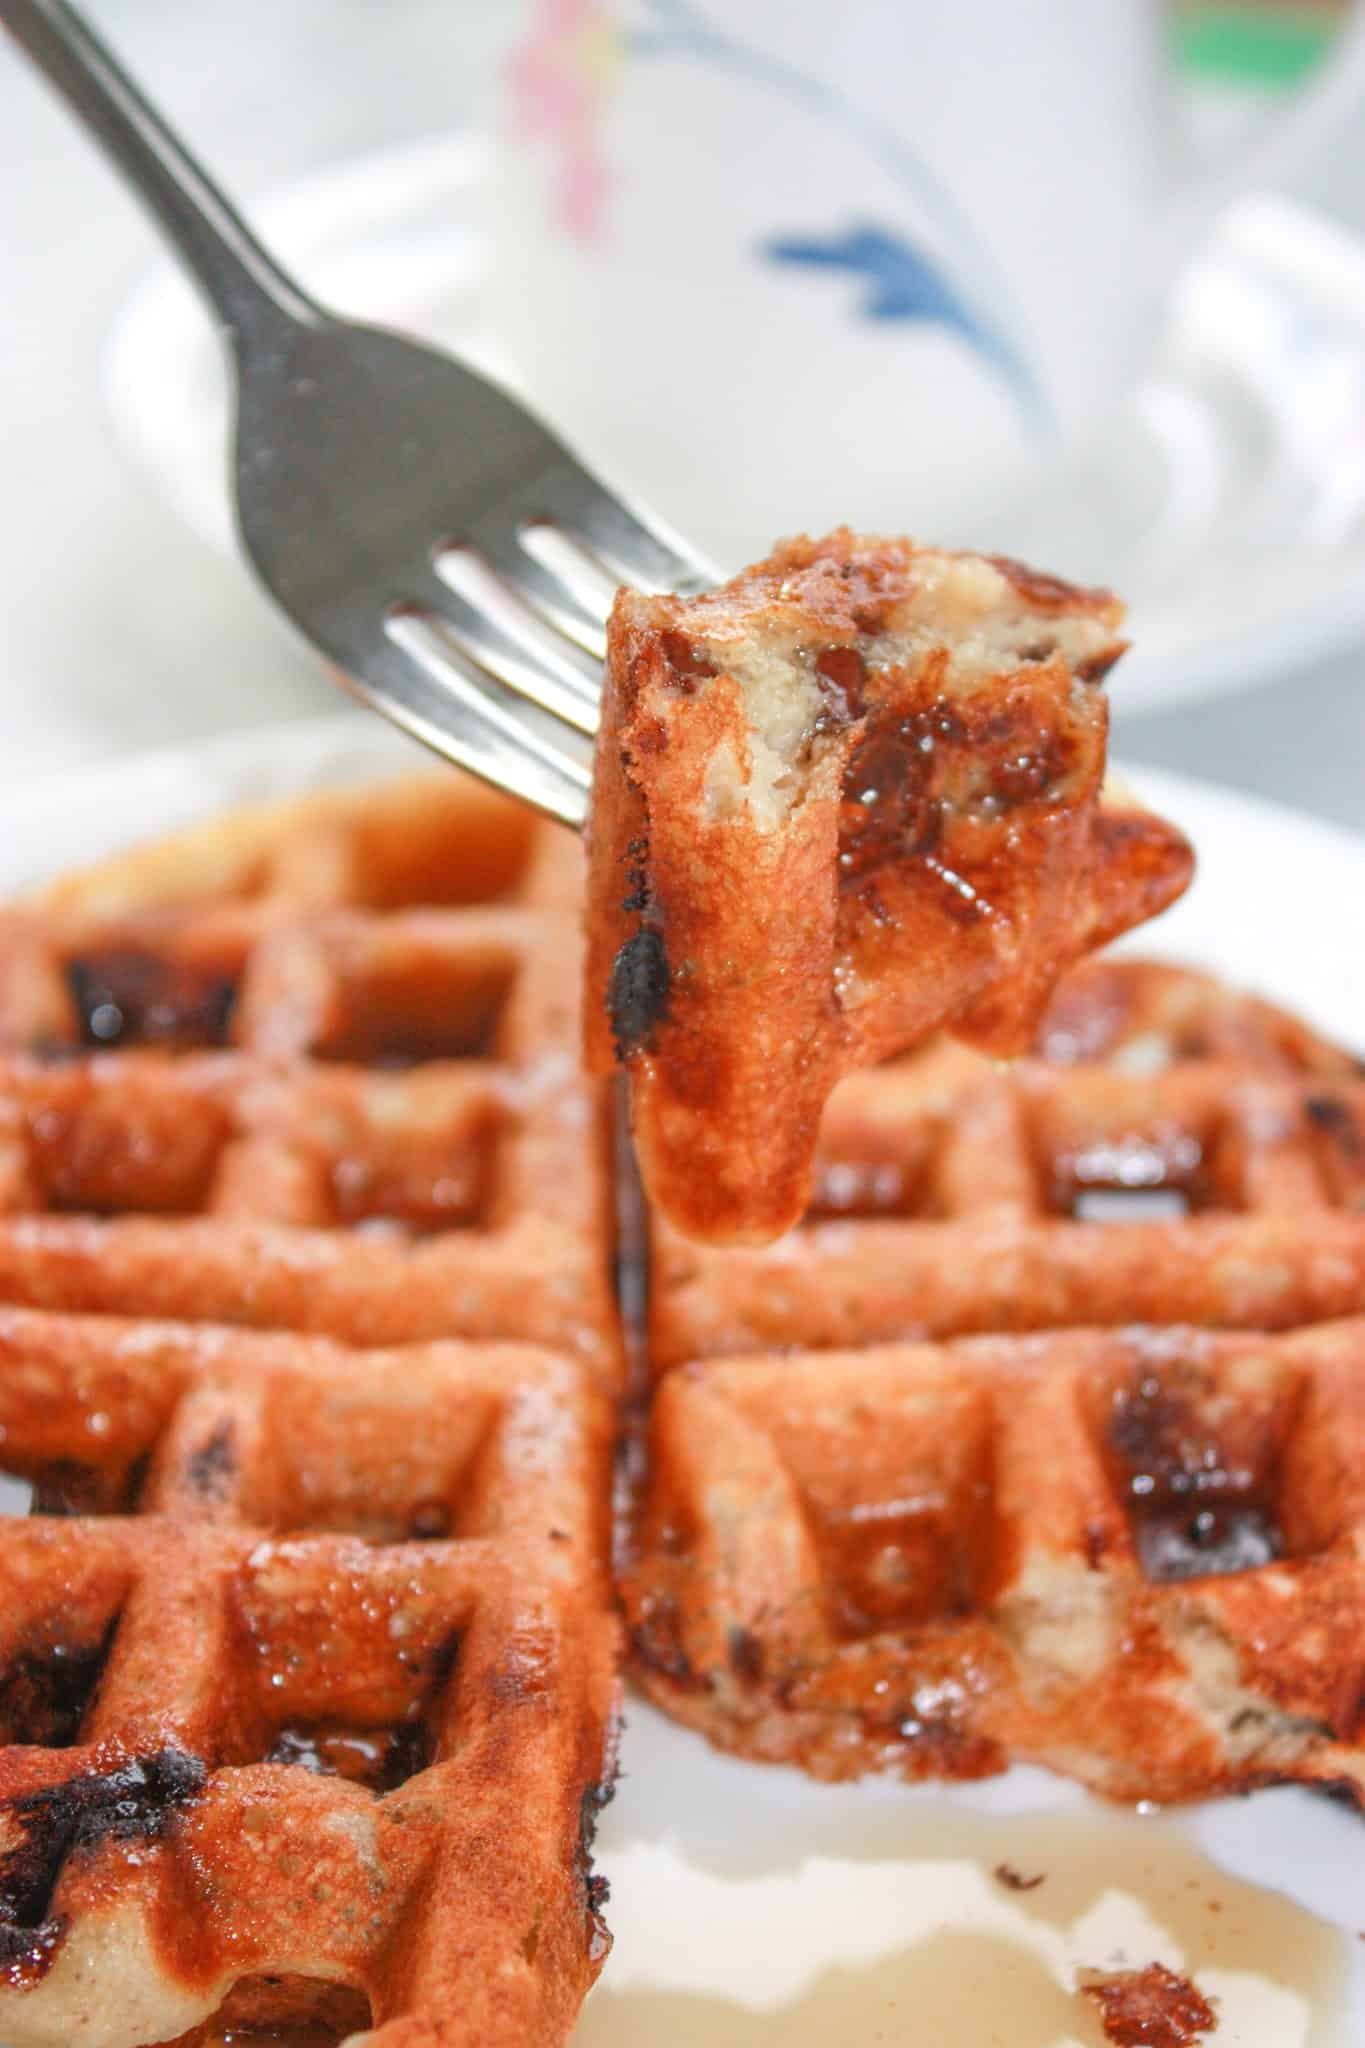 Gluten Free Peanut Butter Chocolate Chip Banana Waffles are loaded with flavour to wake up your taste buds first thing in the morning!